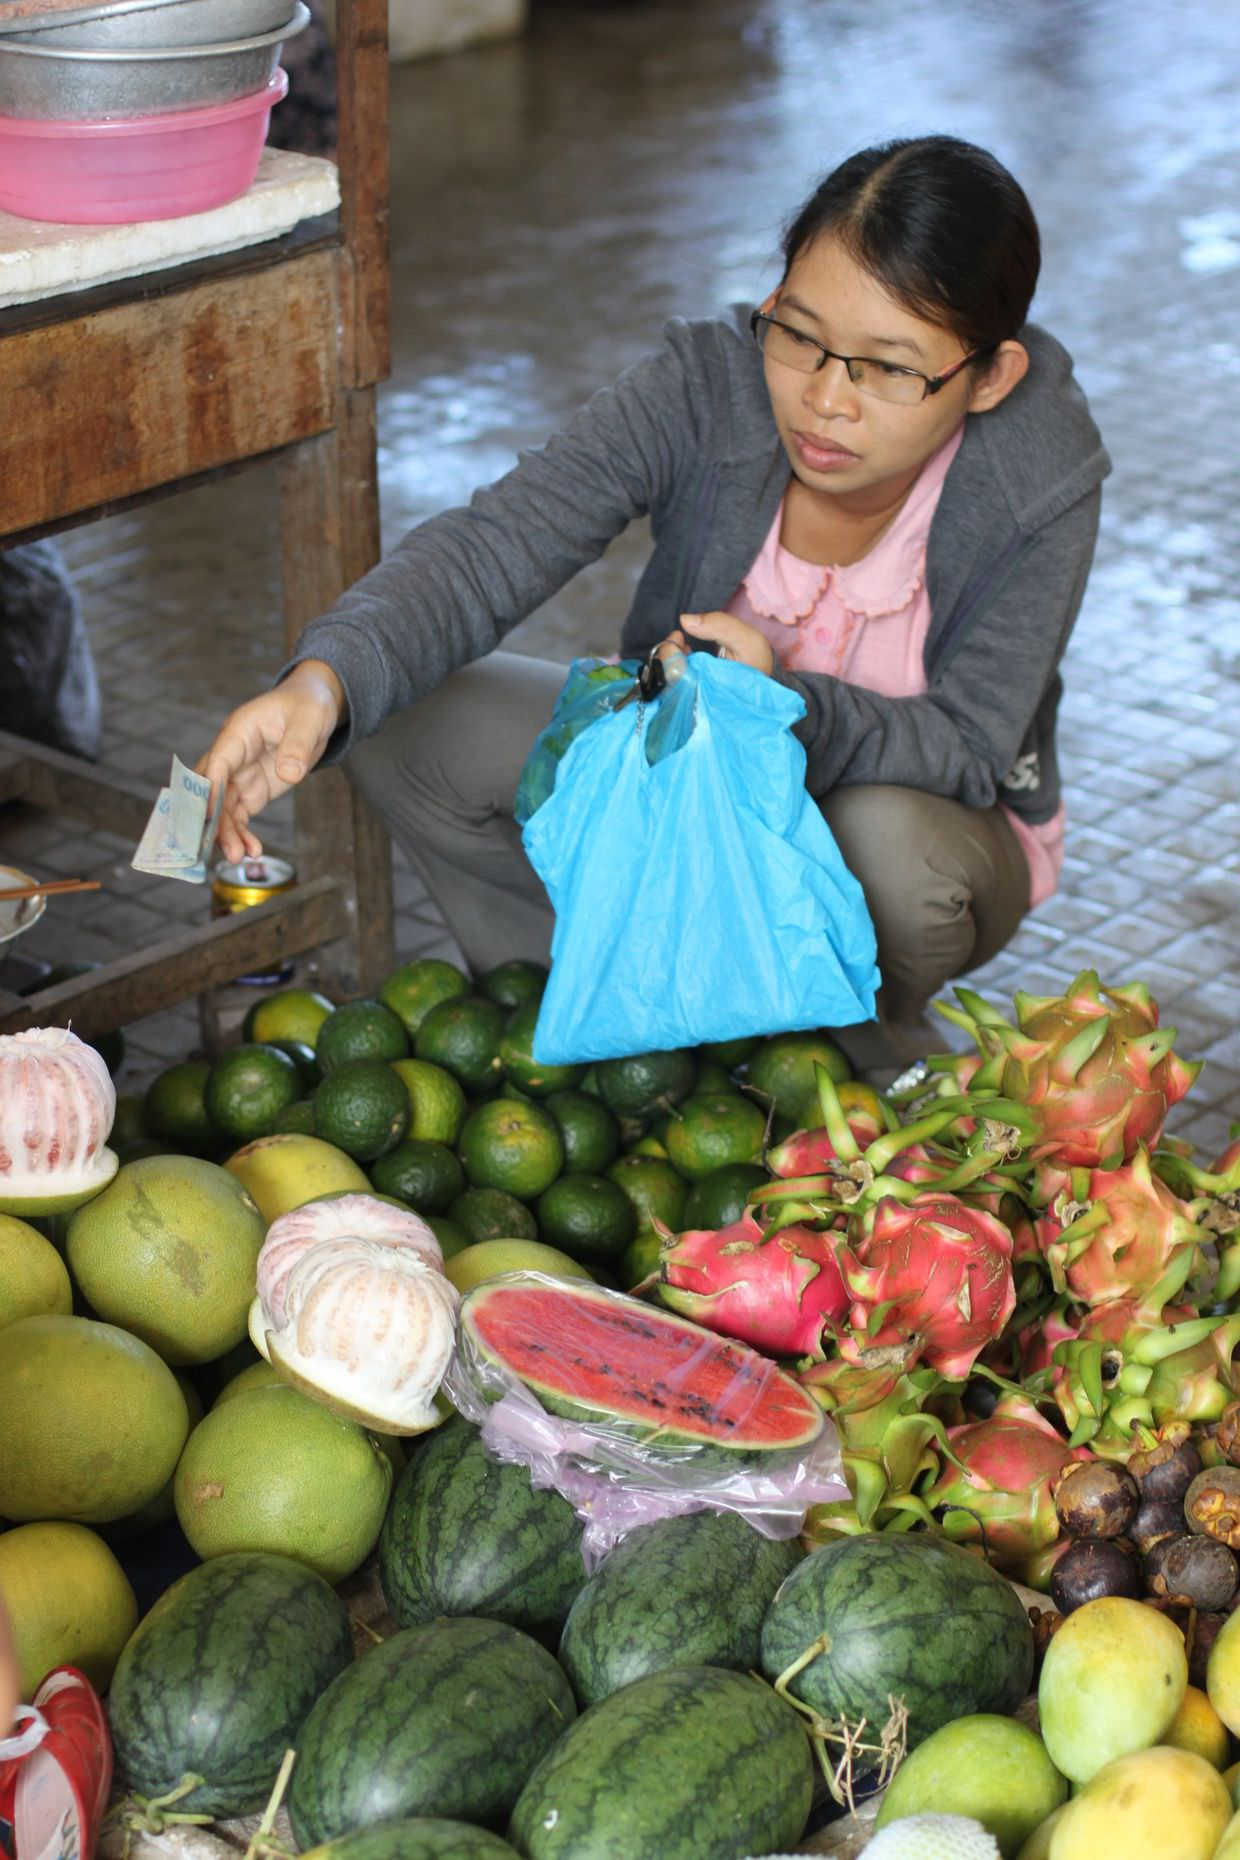 Buying fresh fruit